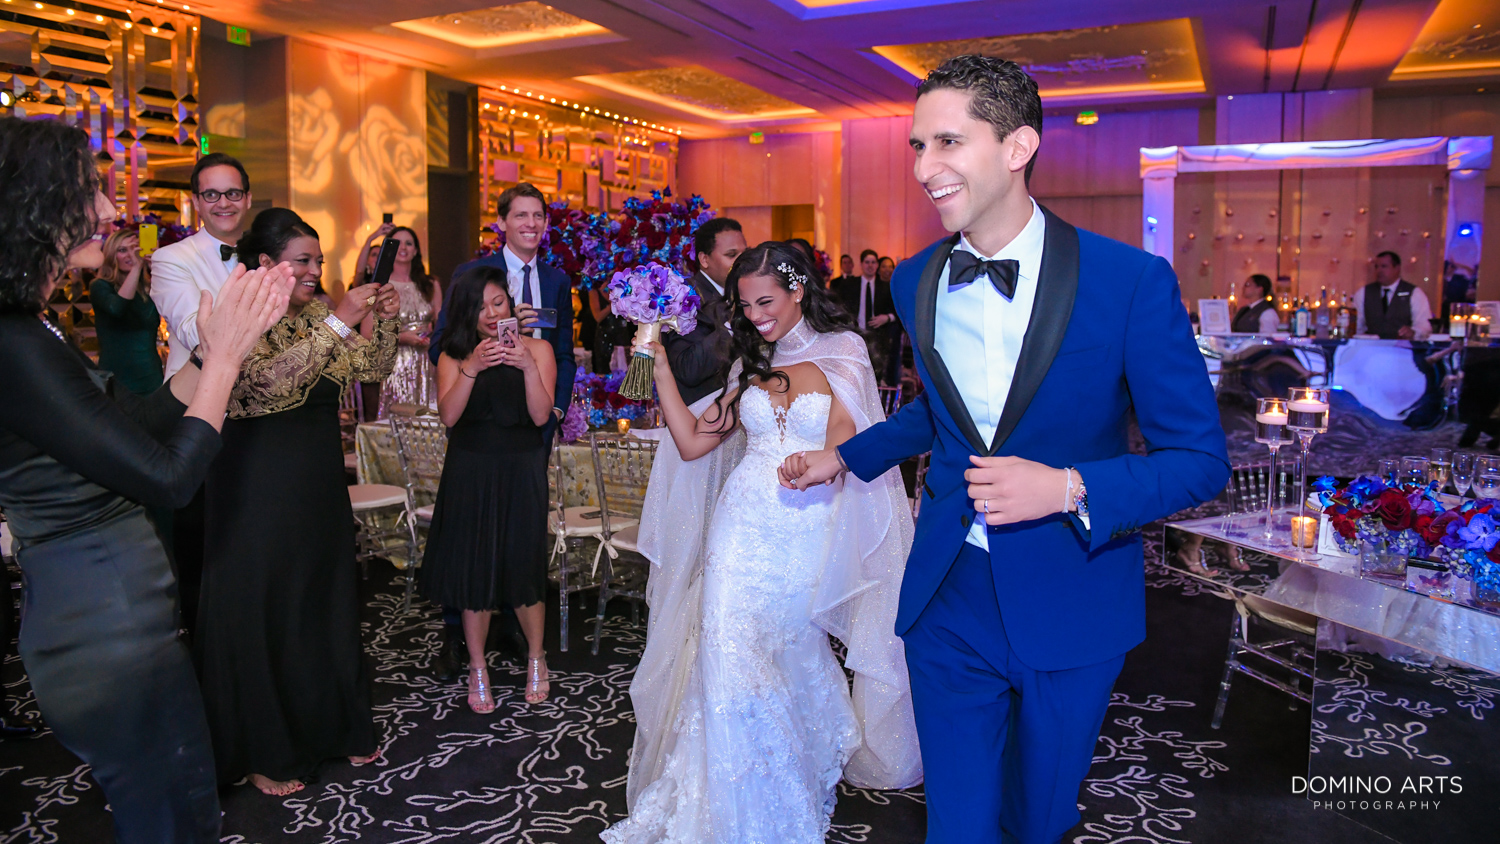 Fun wedding picture of bride and groom at The St. Regis Bal Harbour